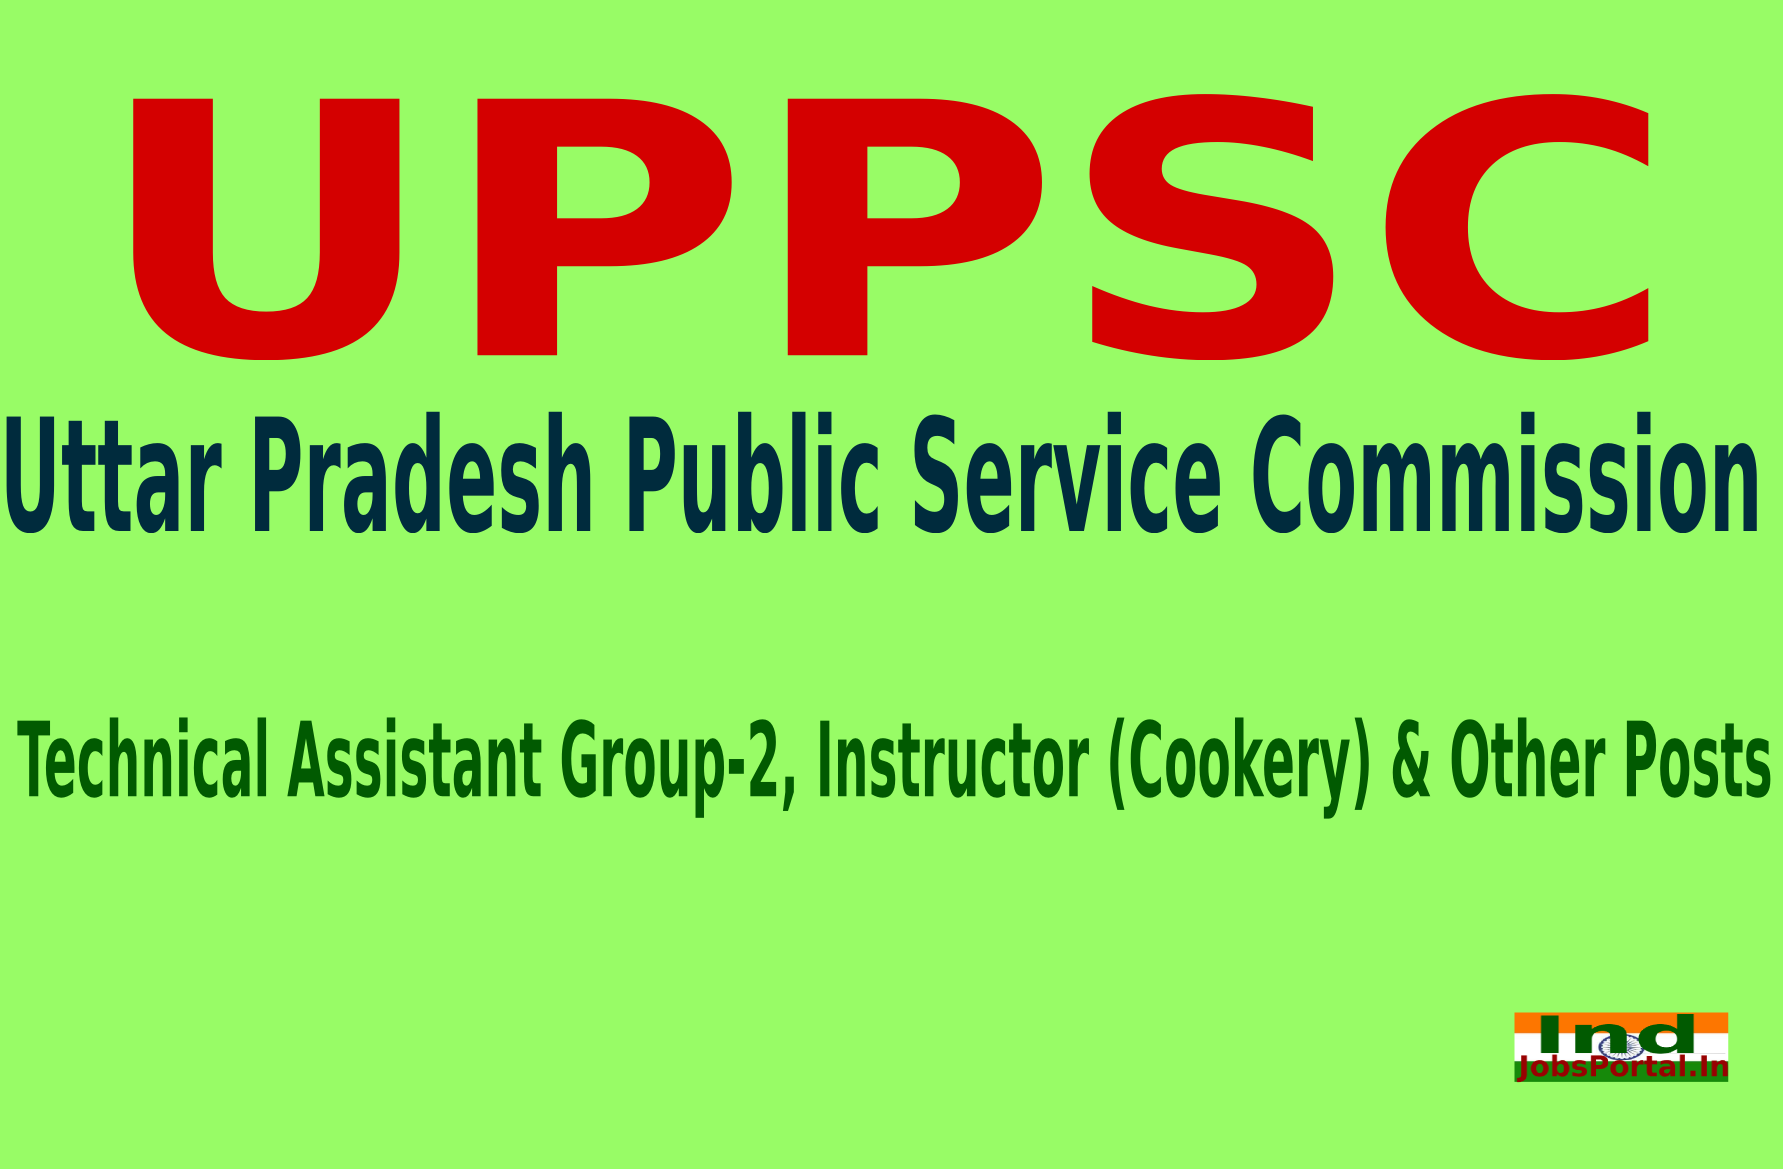 UPPSC Recruitment 2015 For 1655 Technical Assistant Group-2, Instructor (Cookery) & Other Posts